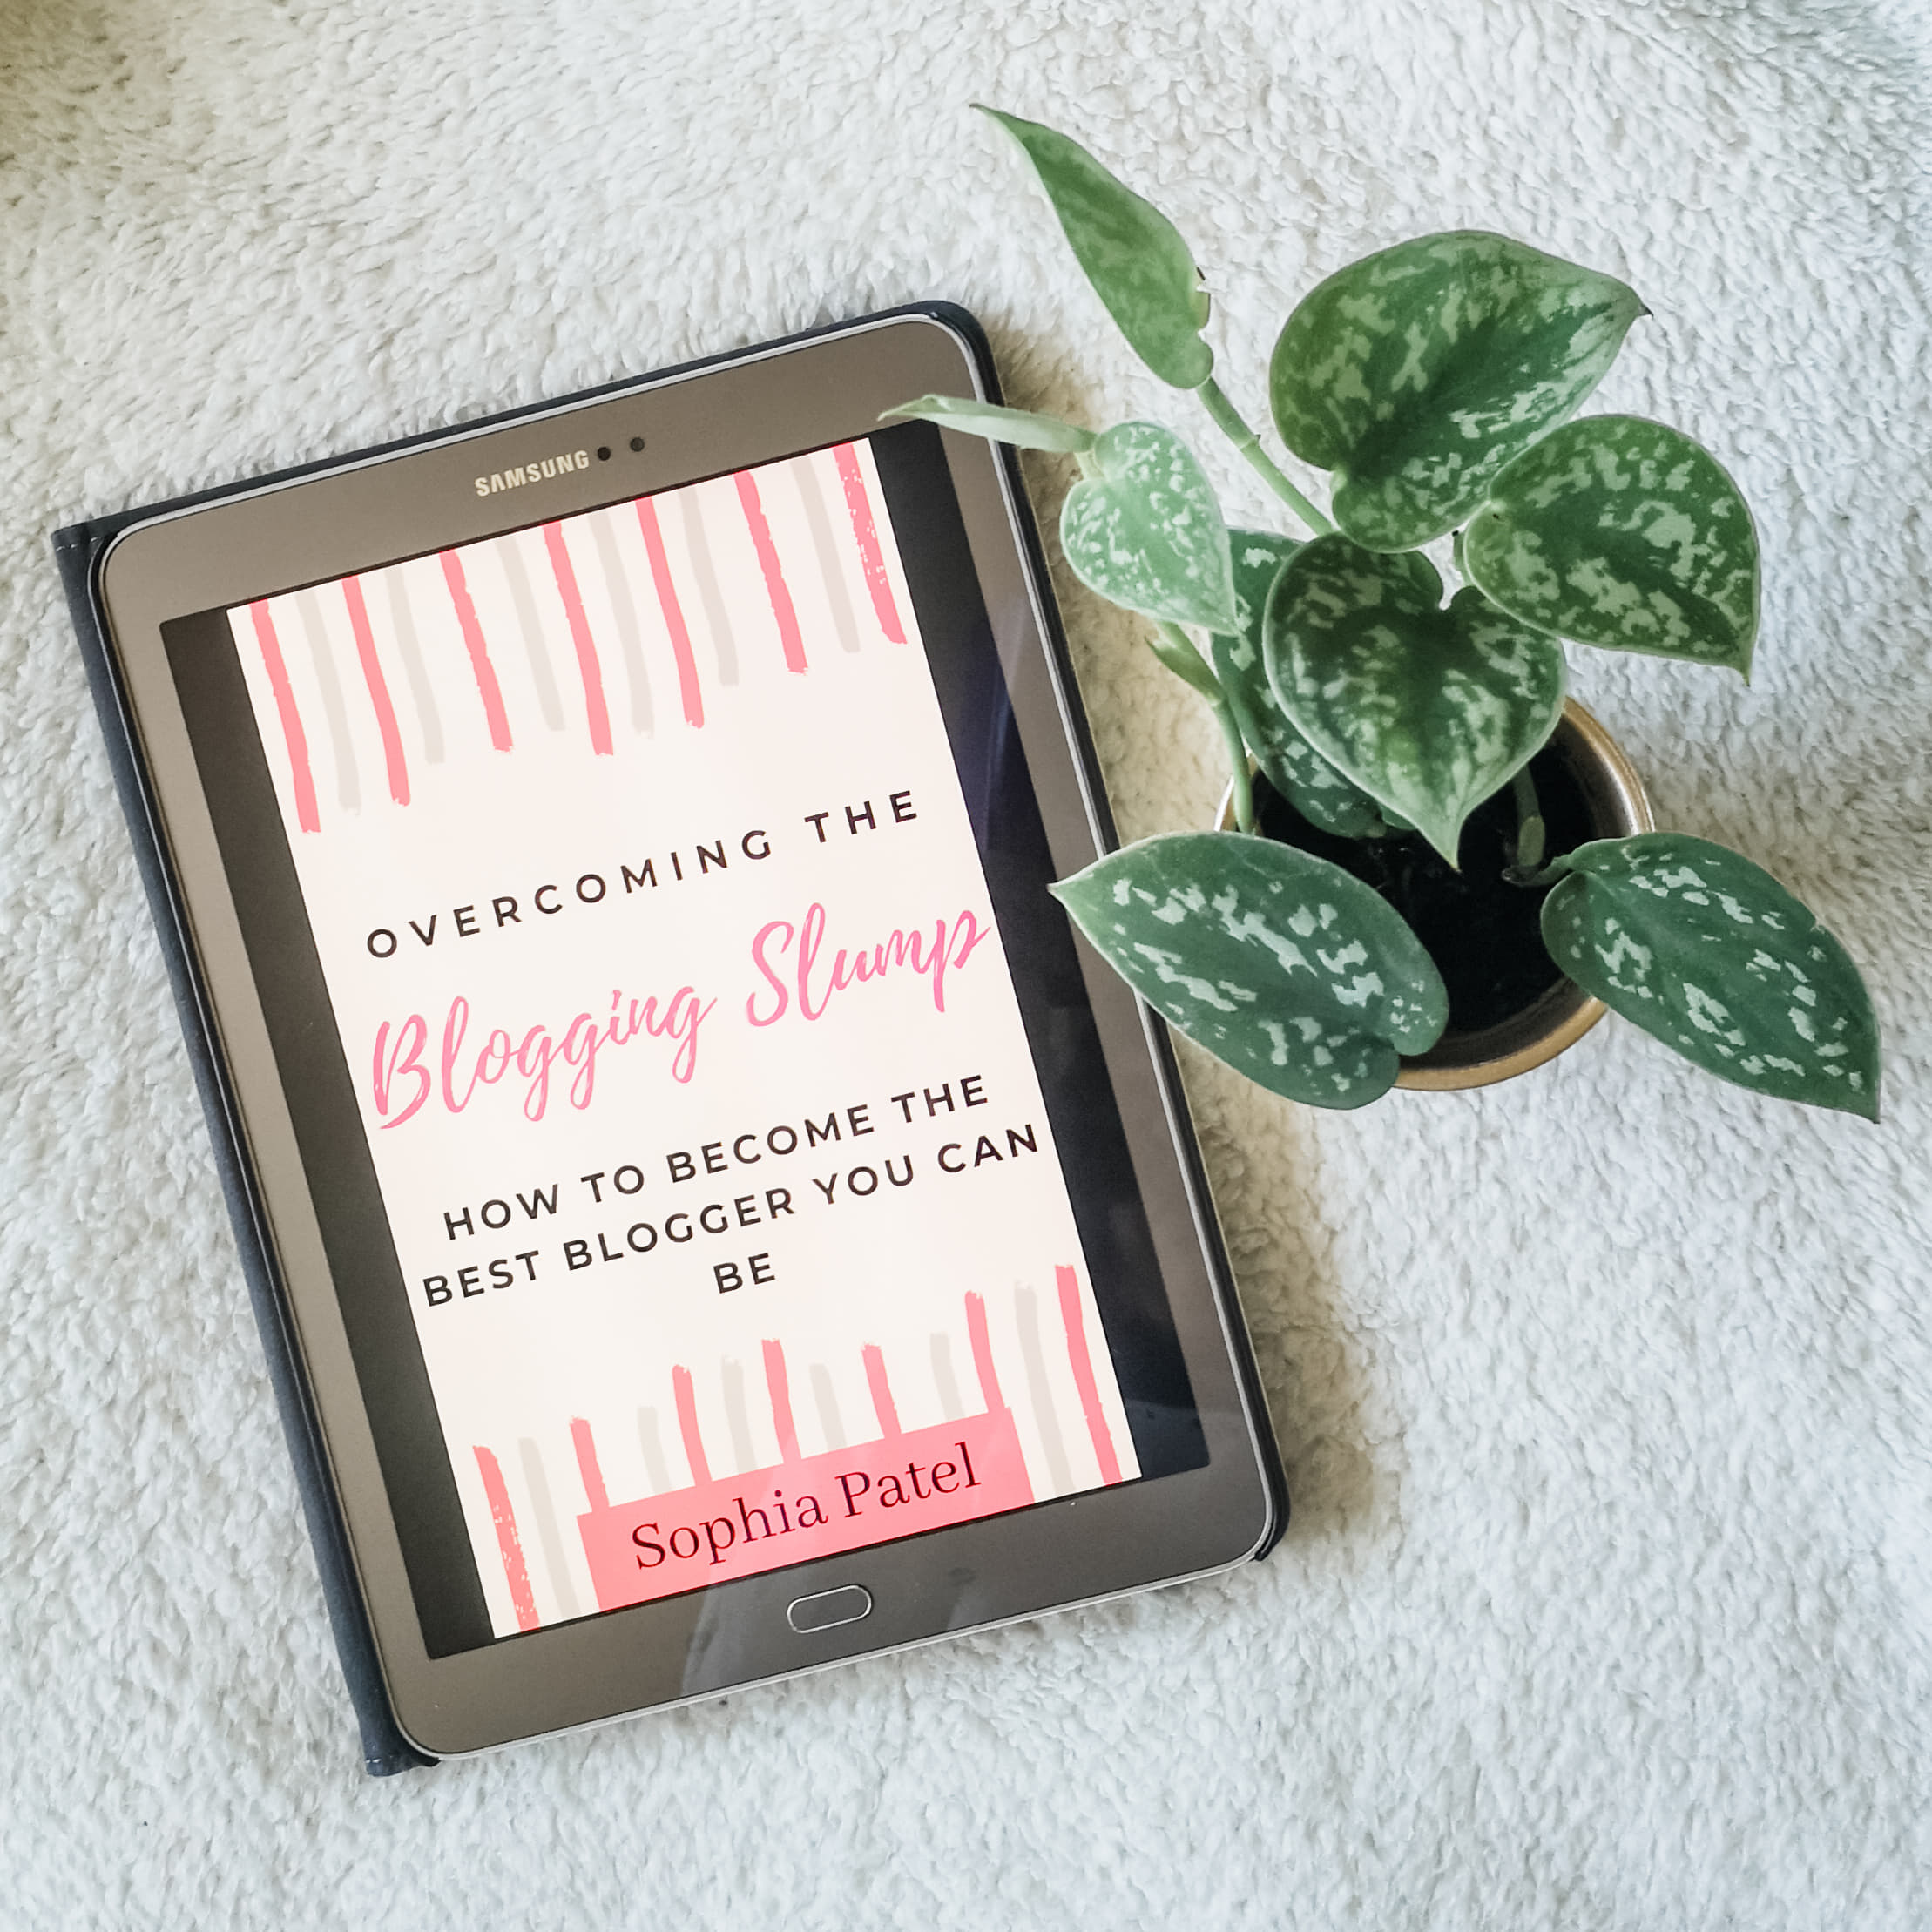 Overcoming The Blogging Slump by Sophia Patel